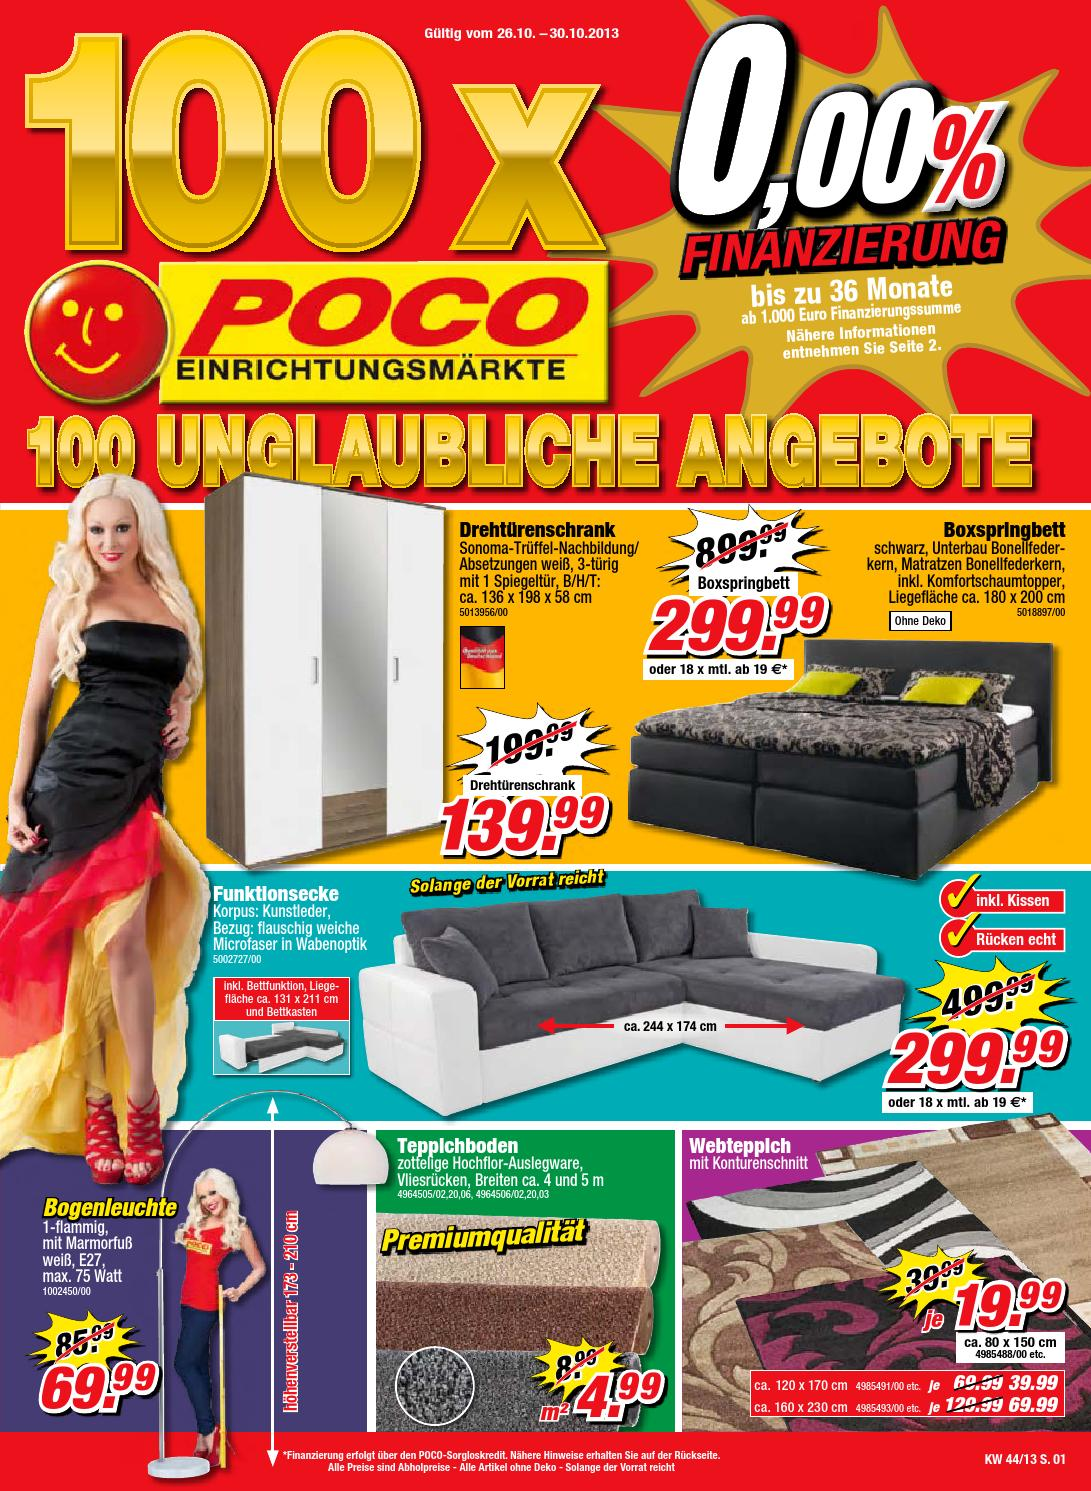 poco katalog g ltig bis 30 10 by broshuri issuu. Black Bedroom Furniture Sets. Home Design Ideas